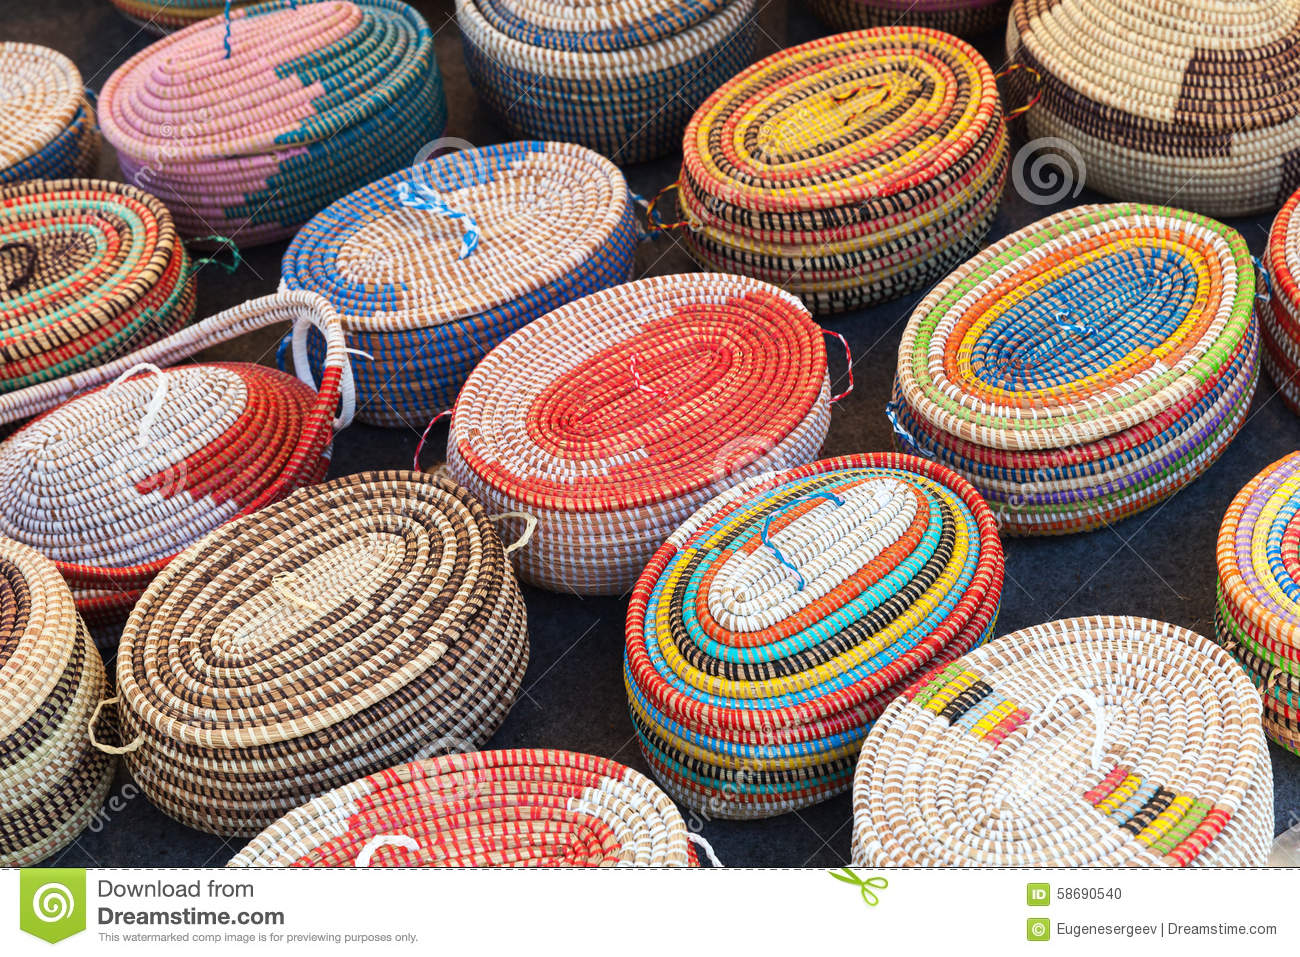 African Woven Hamper Colorful African Wicker Baskets In A Row Stock Photo